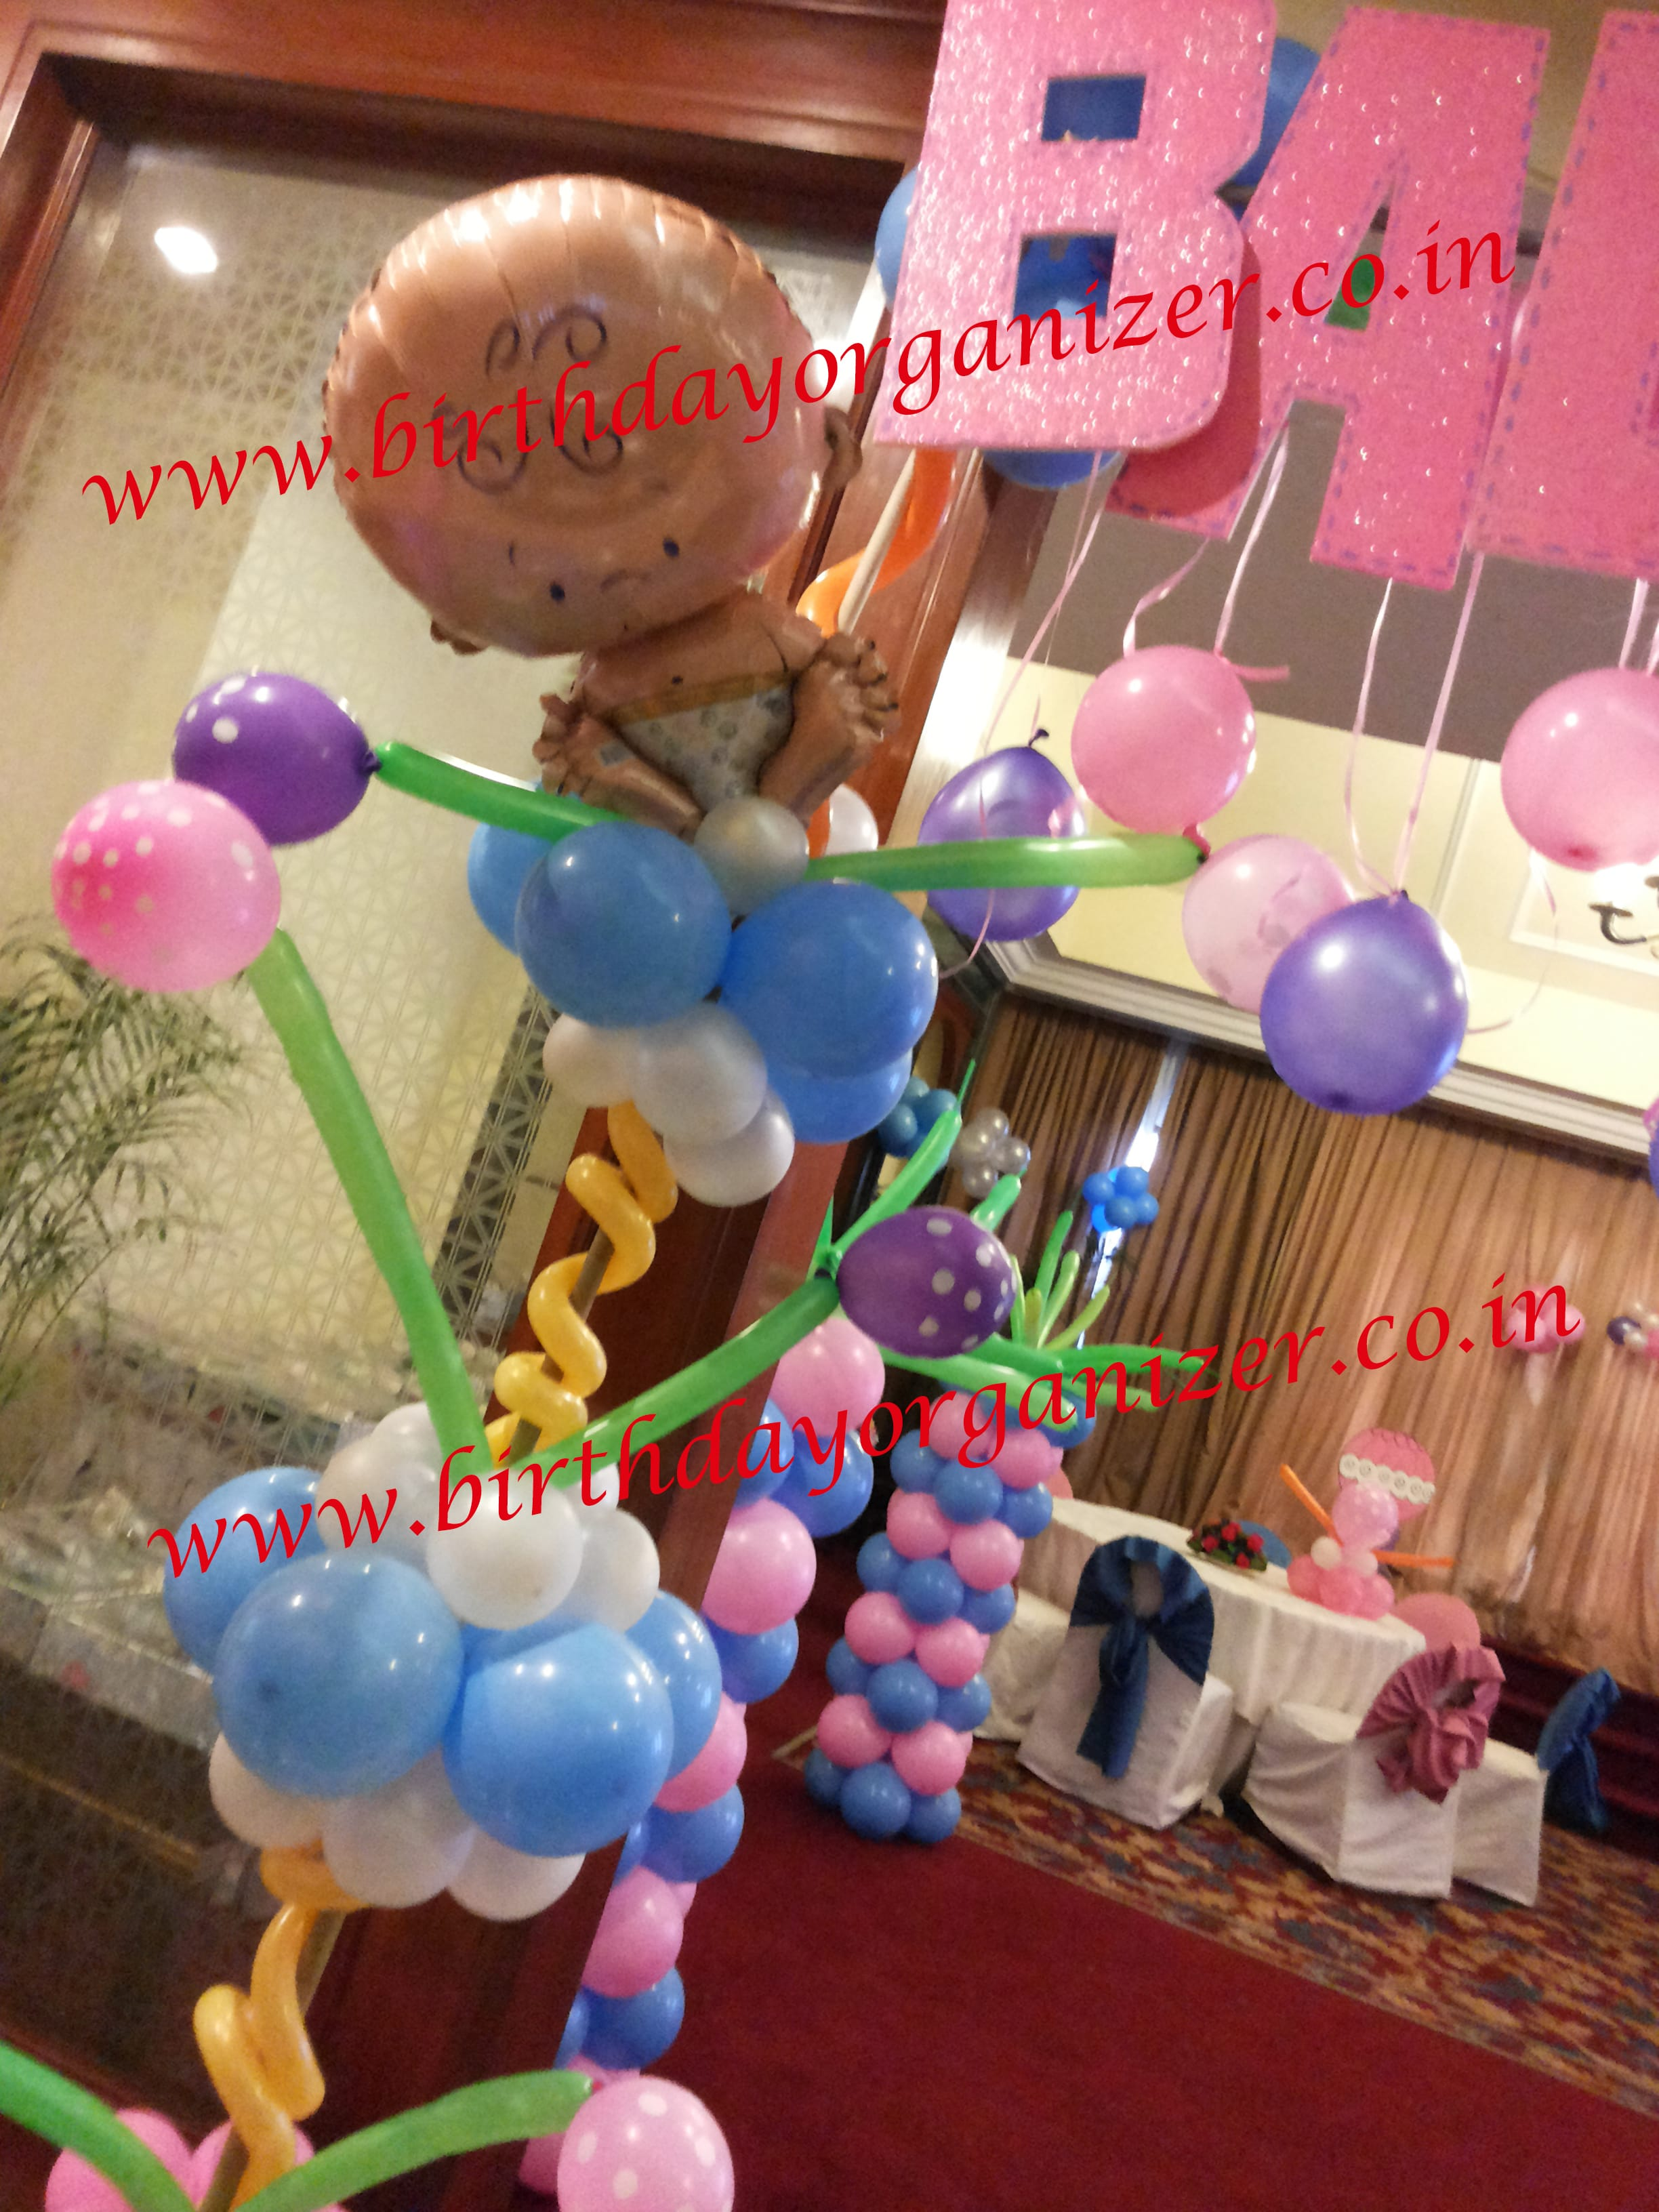 Baby shower theme party decoration in noida, Baby shower theme party decoration in delhi, Baby shower theme party decoration in ncr, Baby shower theme party decoration gurgaon